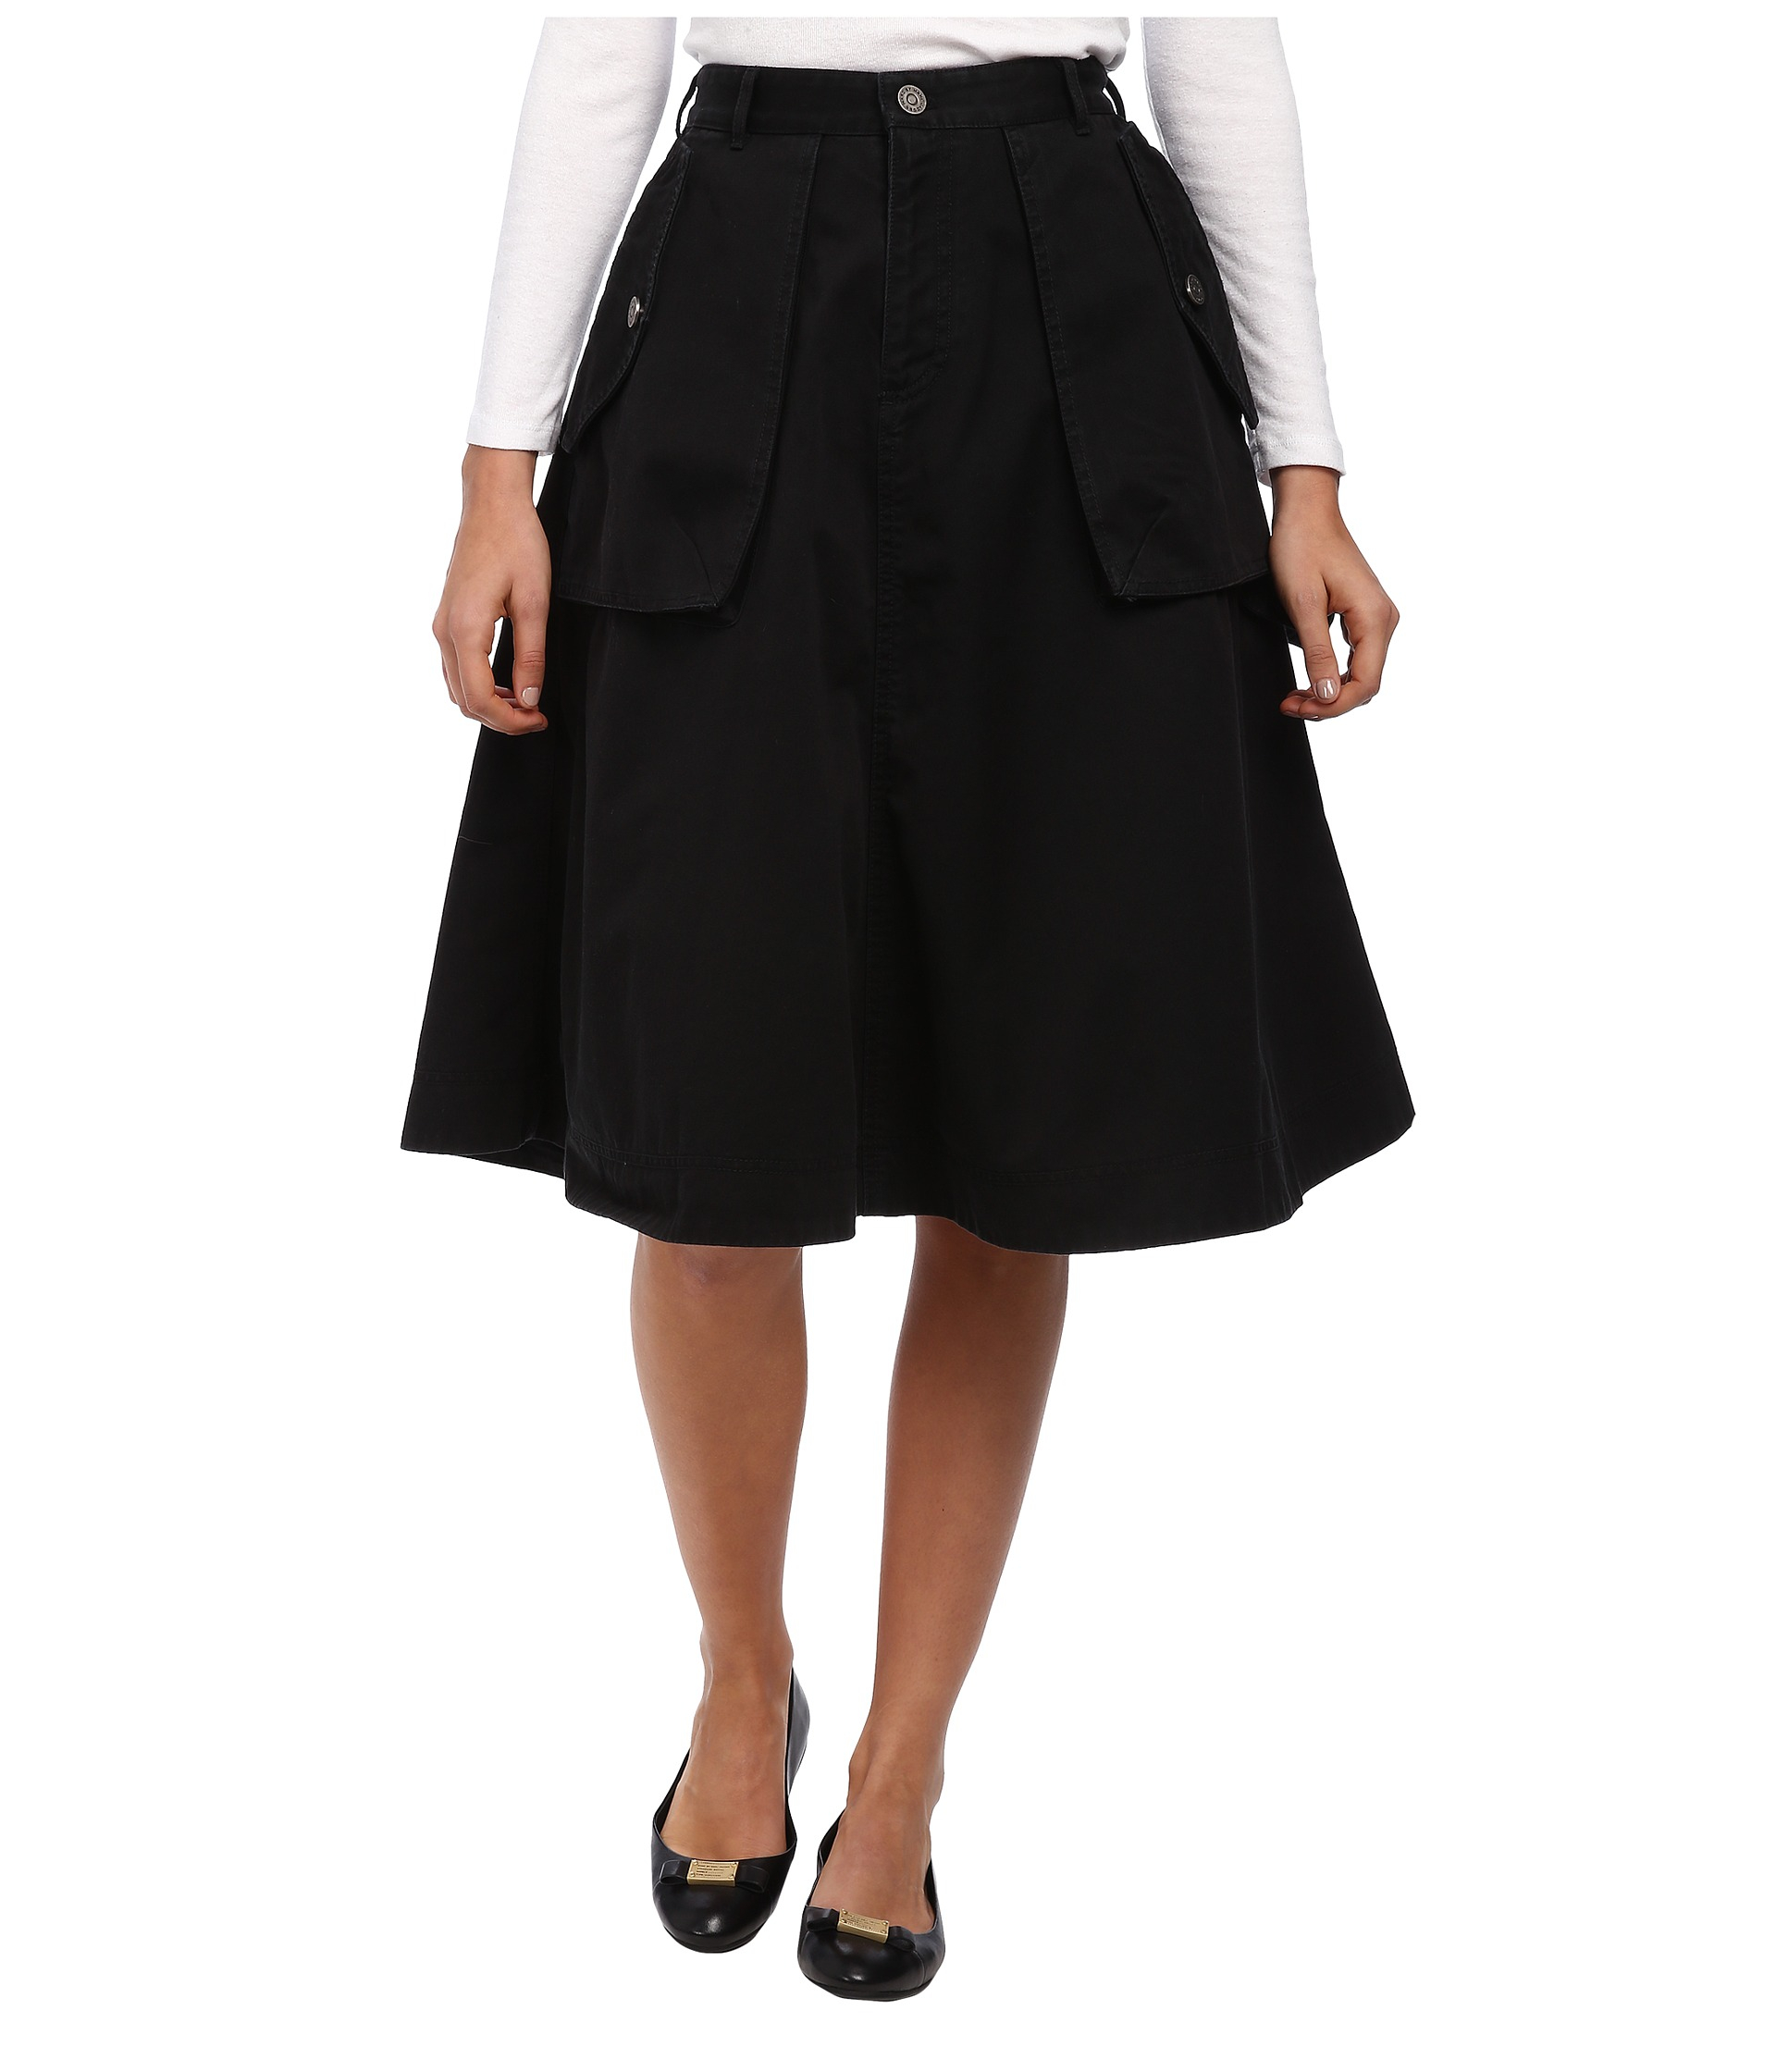 New Womens Black, Semisheer Skirt From Marc Jacobs Crafted From Tulle And Cut For A Midi Length, The Skirt Comprises A Slipon Design With A Selftie, Neon Belt To The Waist The Net Skirt Is Complete With A Detachable, Silk Underskirt Used To